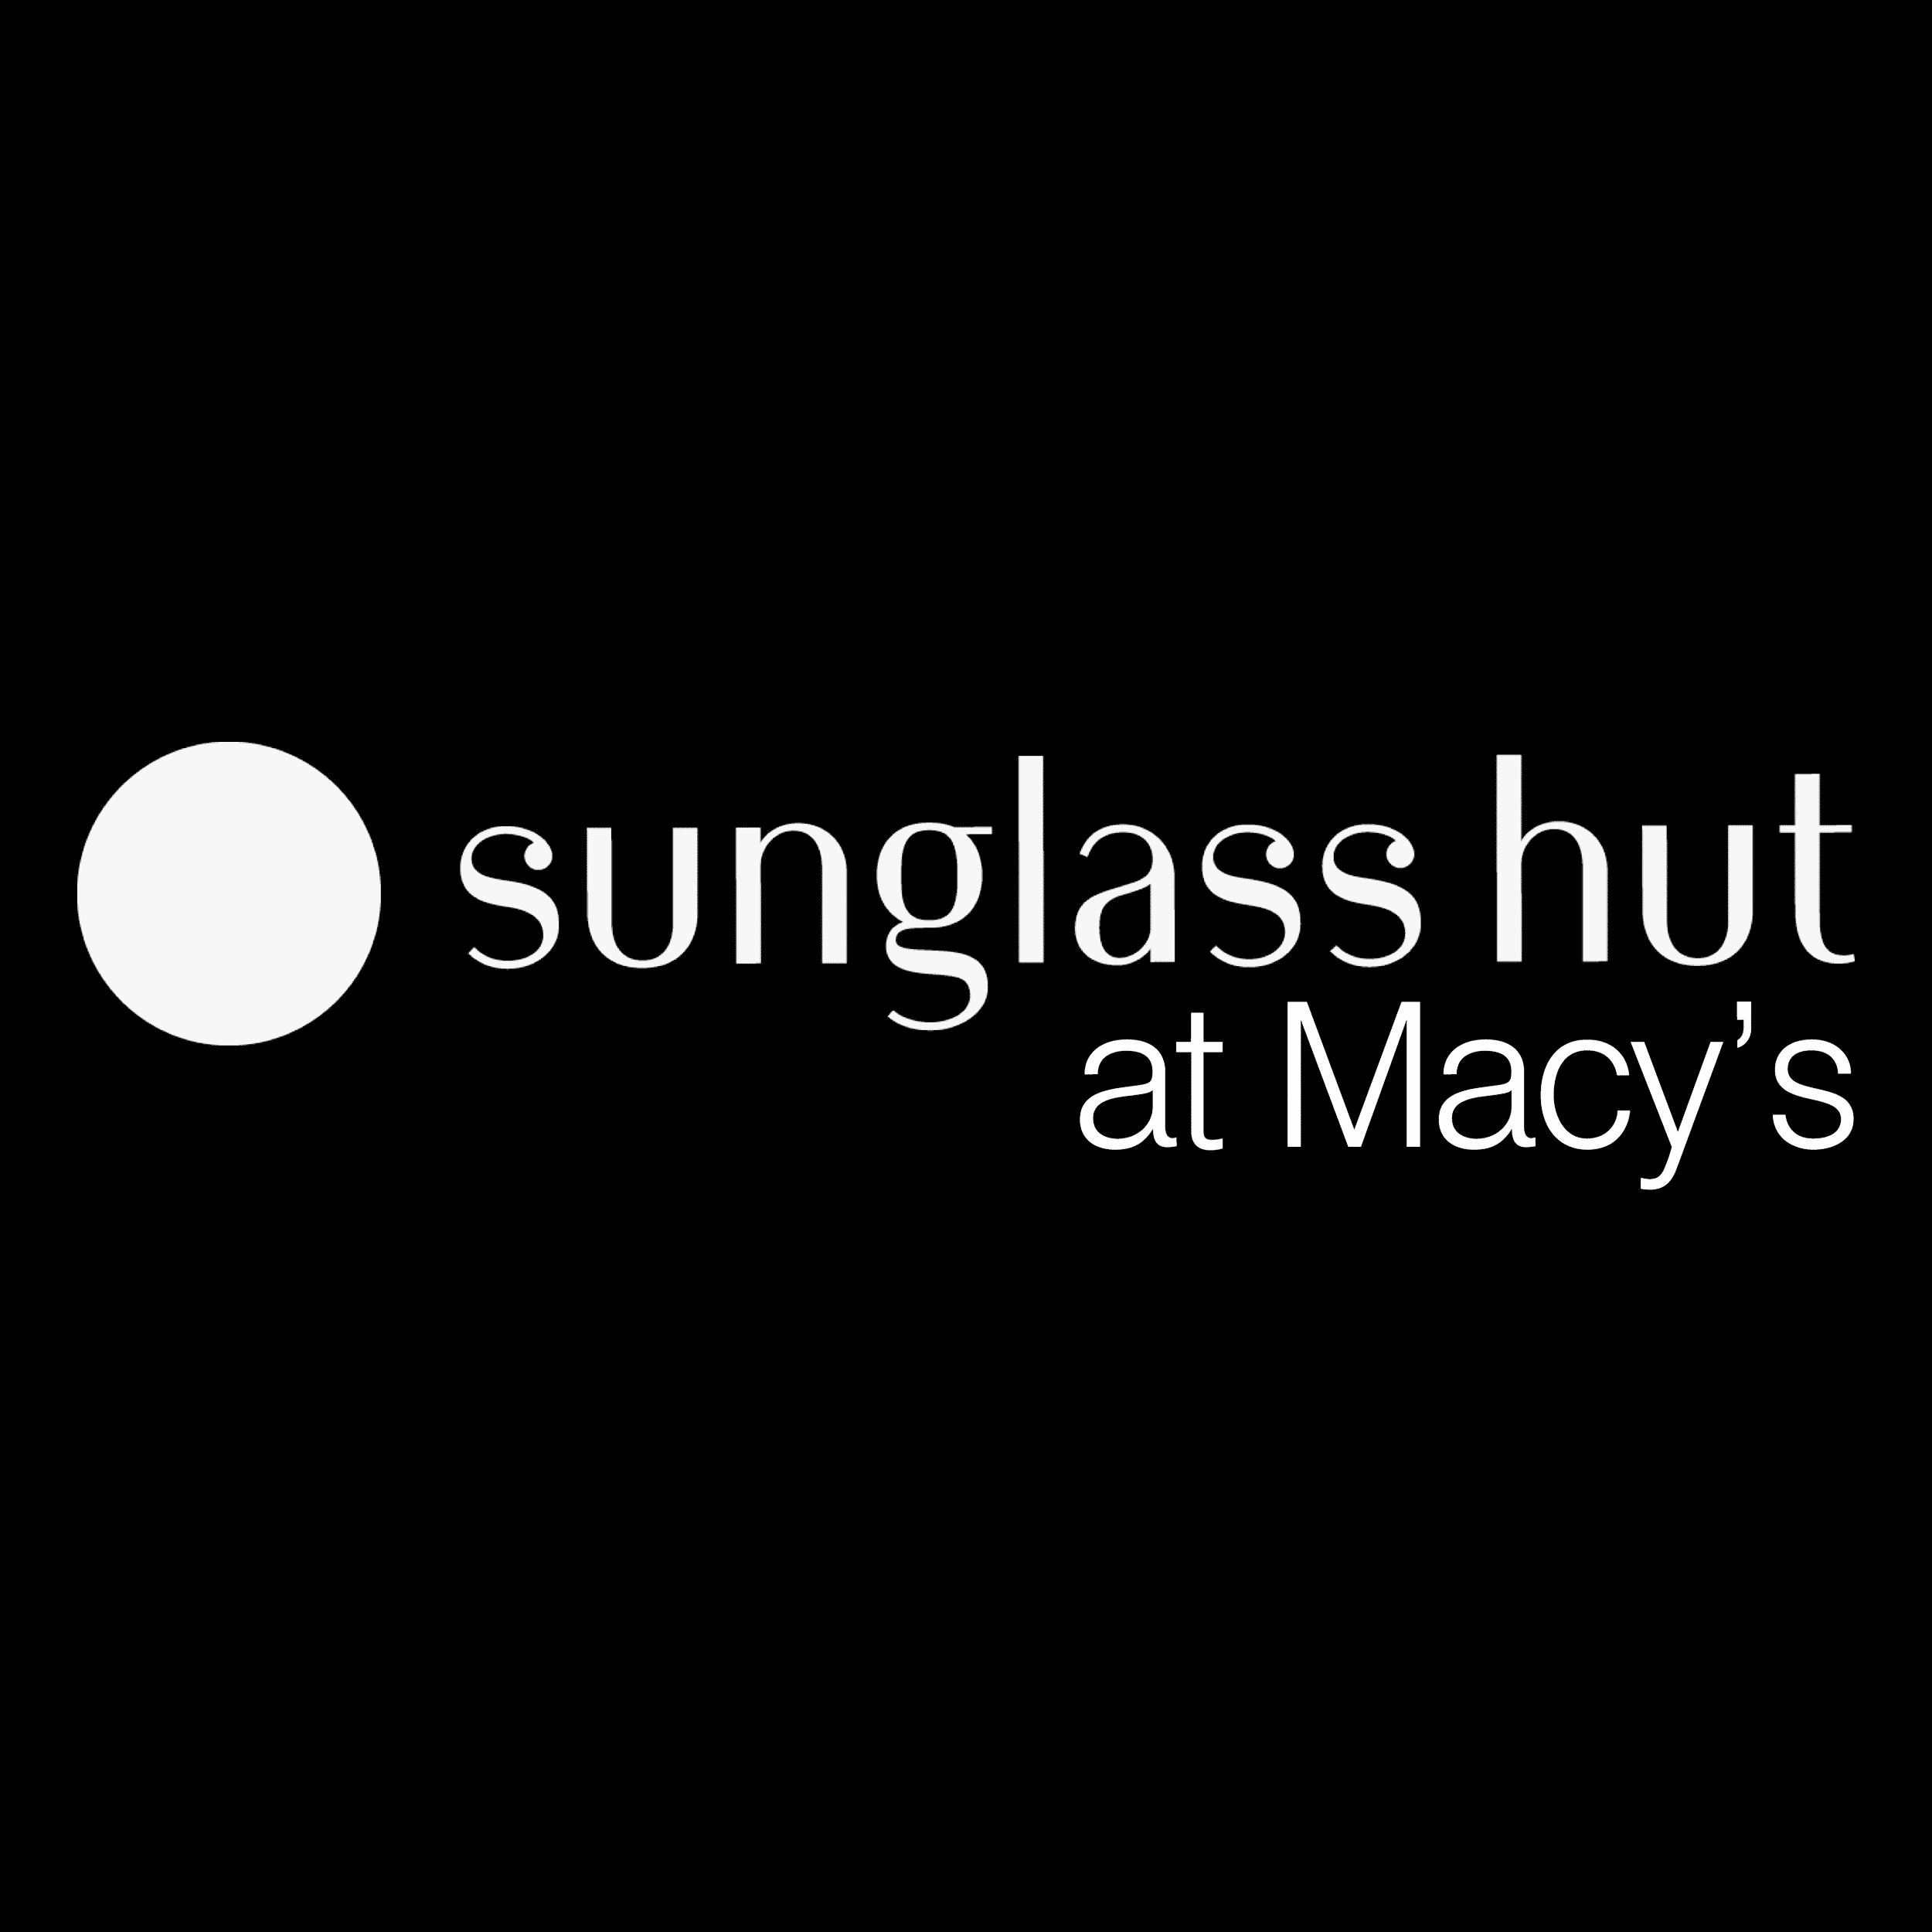 Sunglasses Store in OR Salem 97301 Sunglass Hut at Macy's 400 High St NE  (503)763-7165